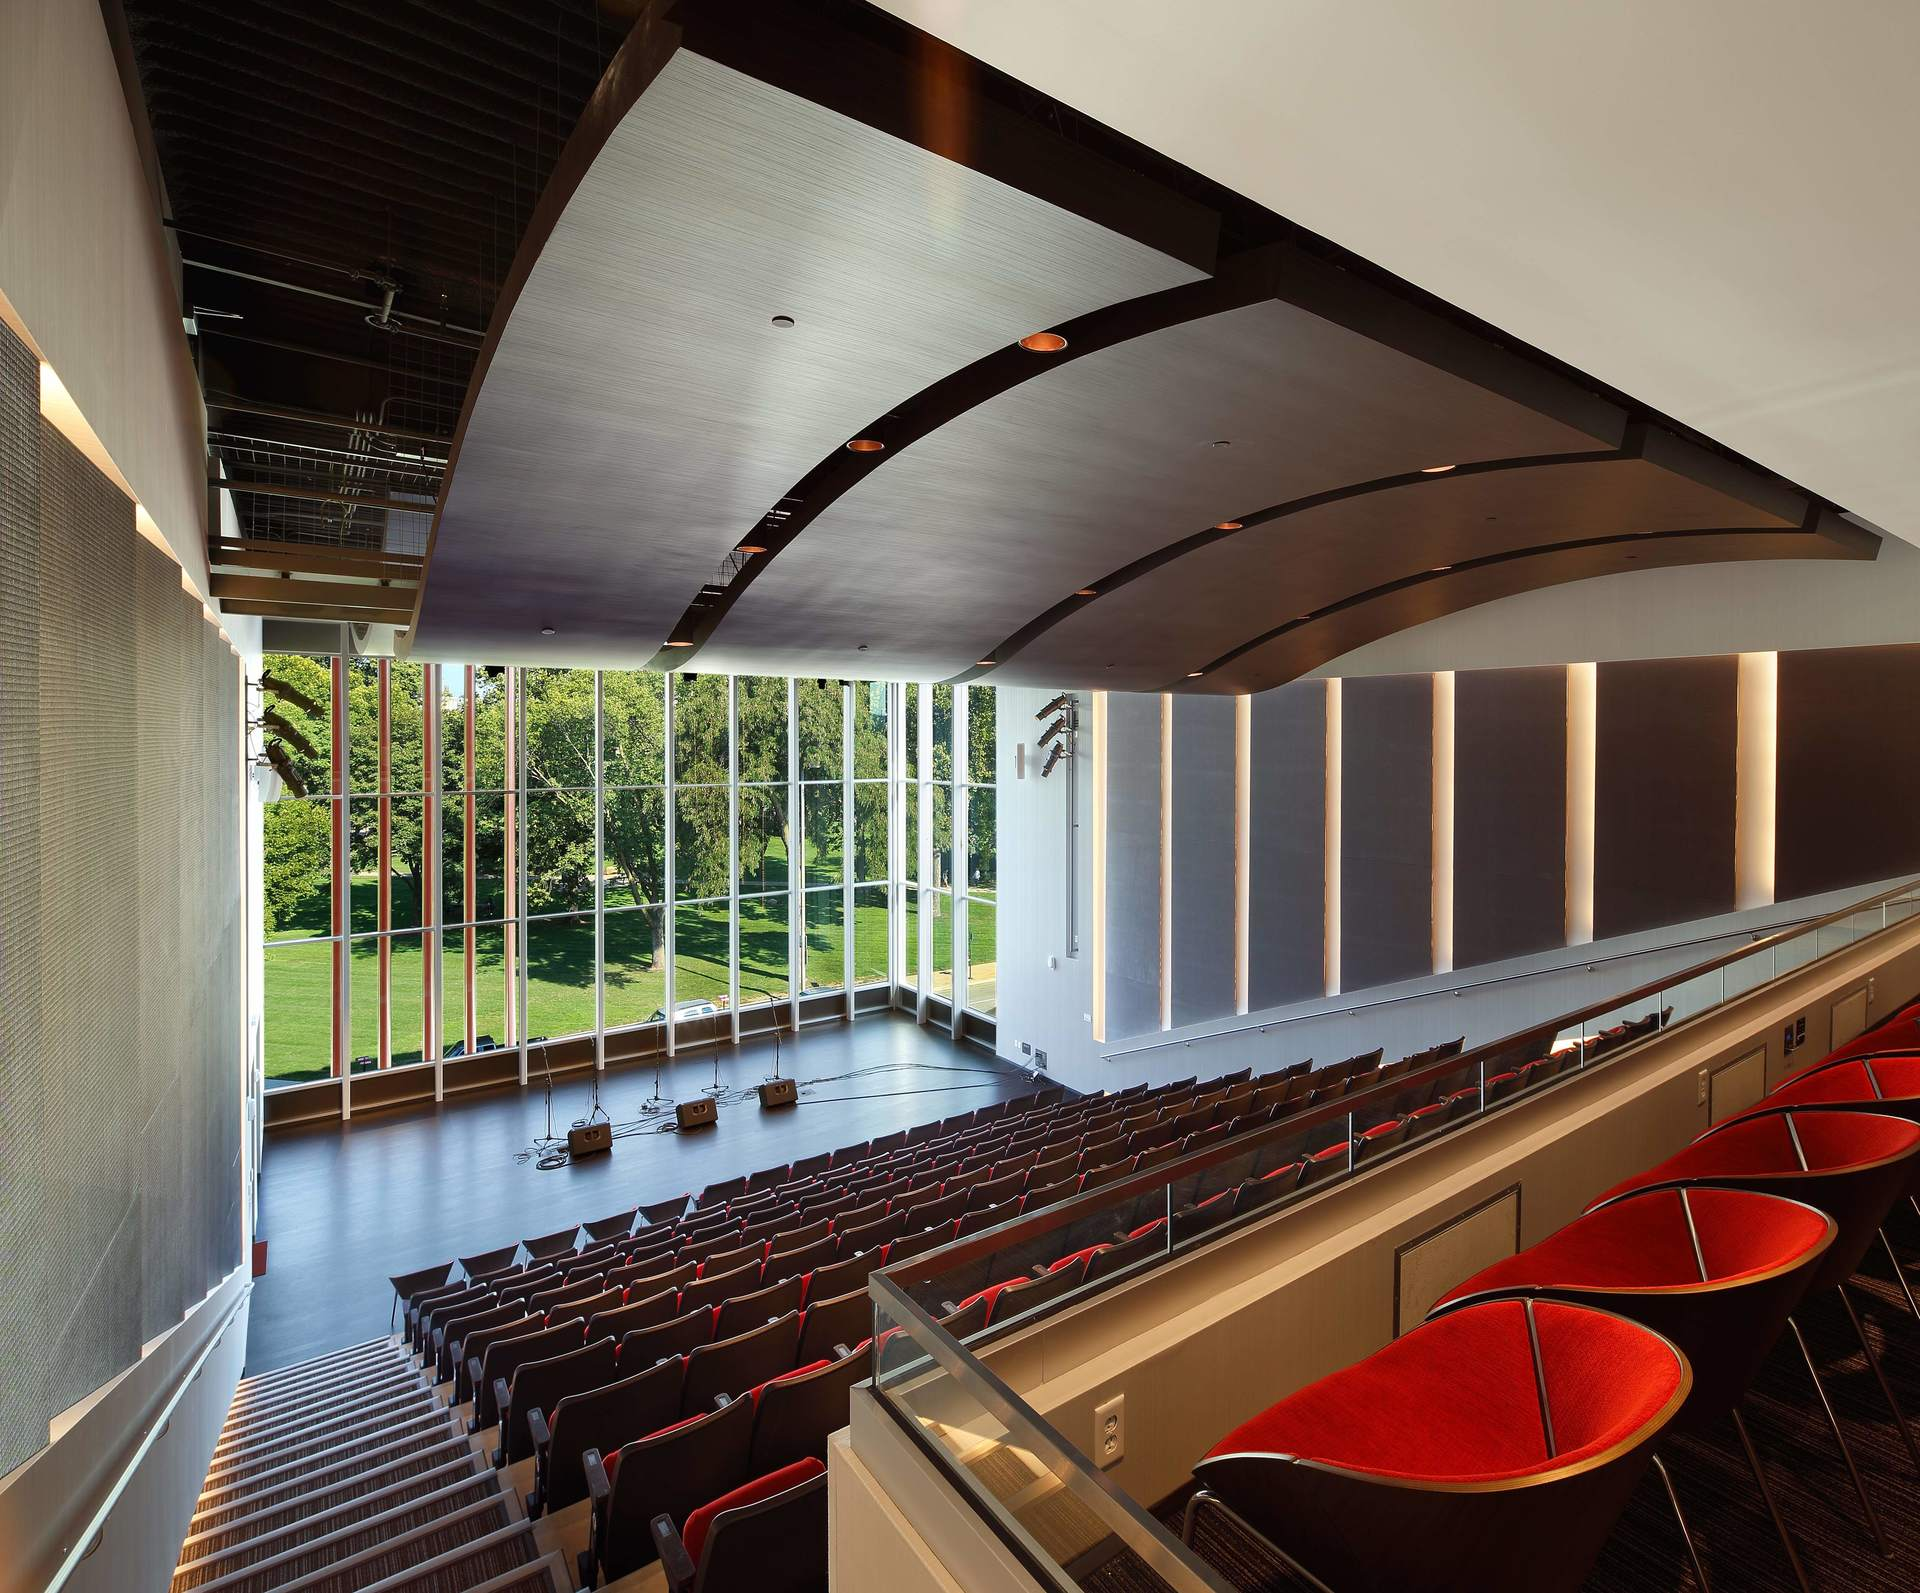 Single-zone displacement ventilation systems serve the 200-seat auditorium in the new Cedar Rapids Public Library.